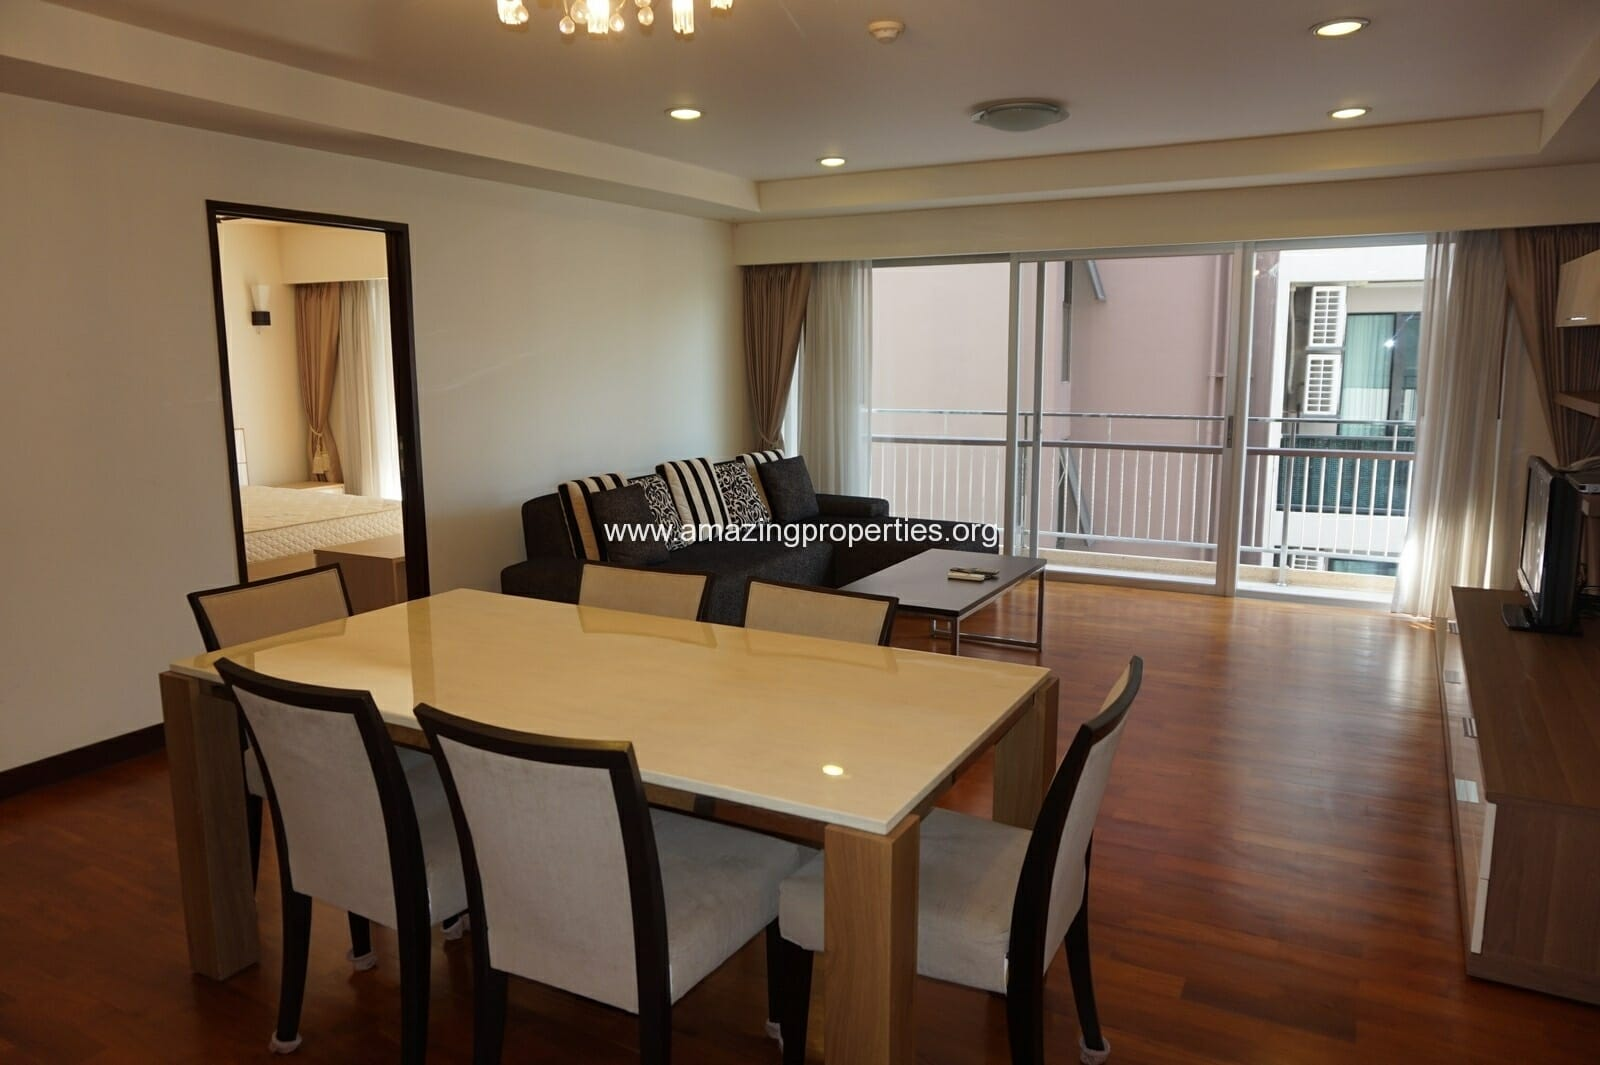 3 bedroom Baan Sukhumvit 14